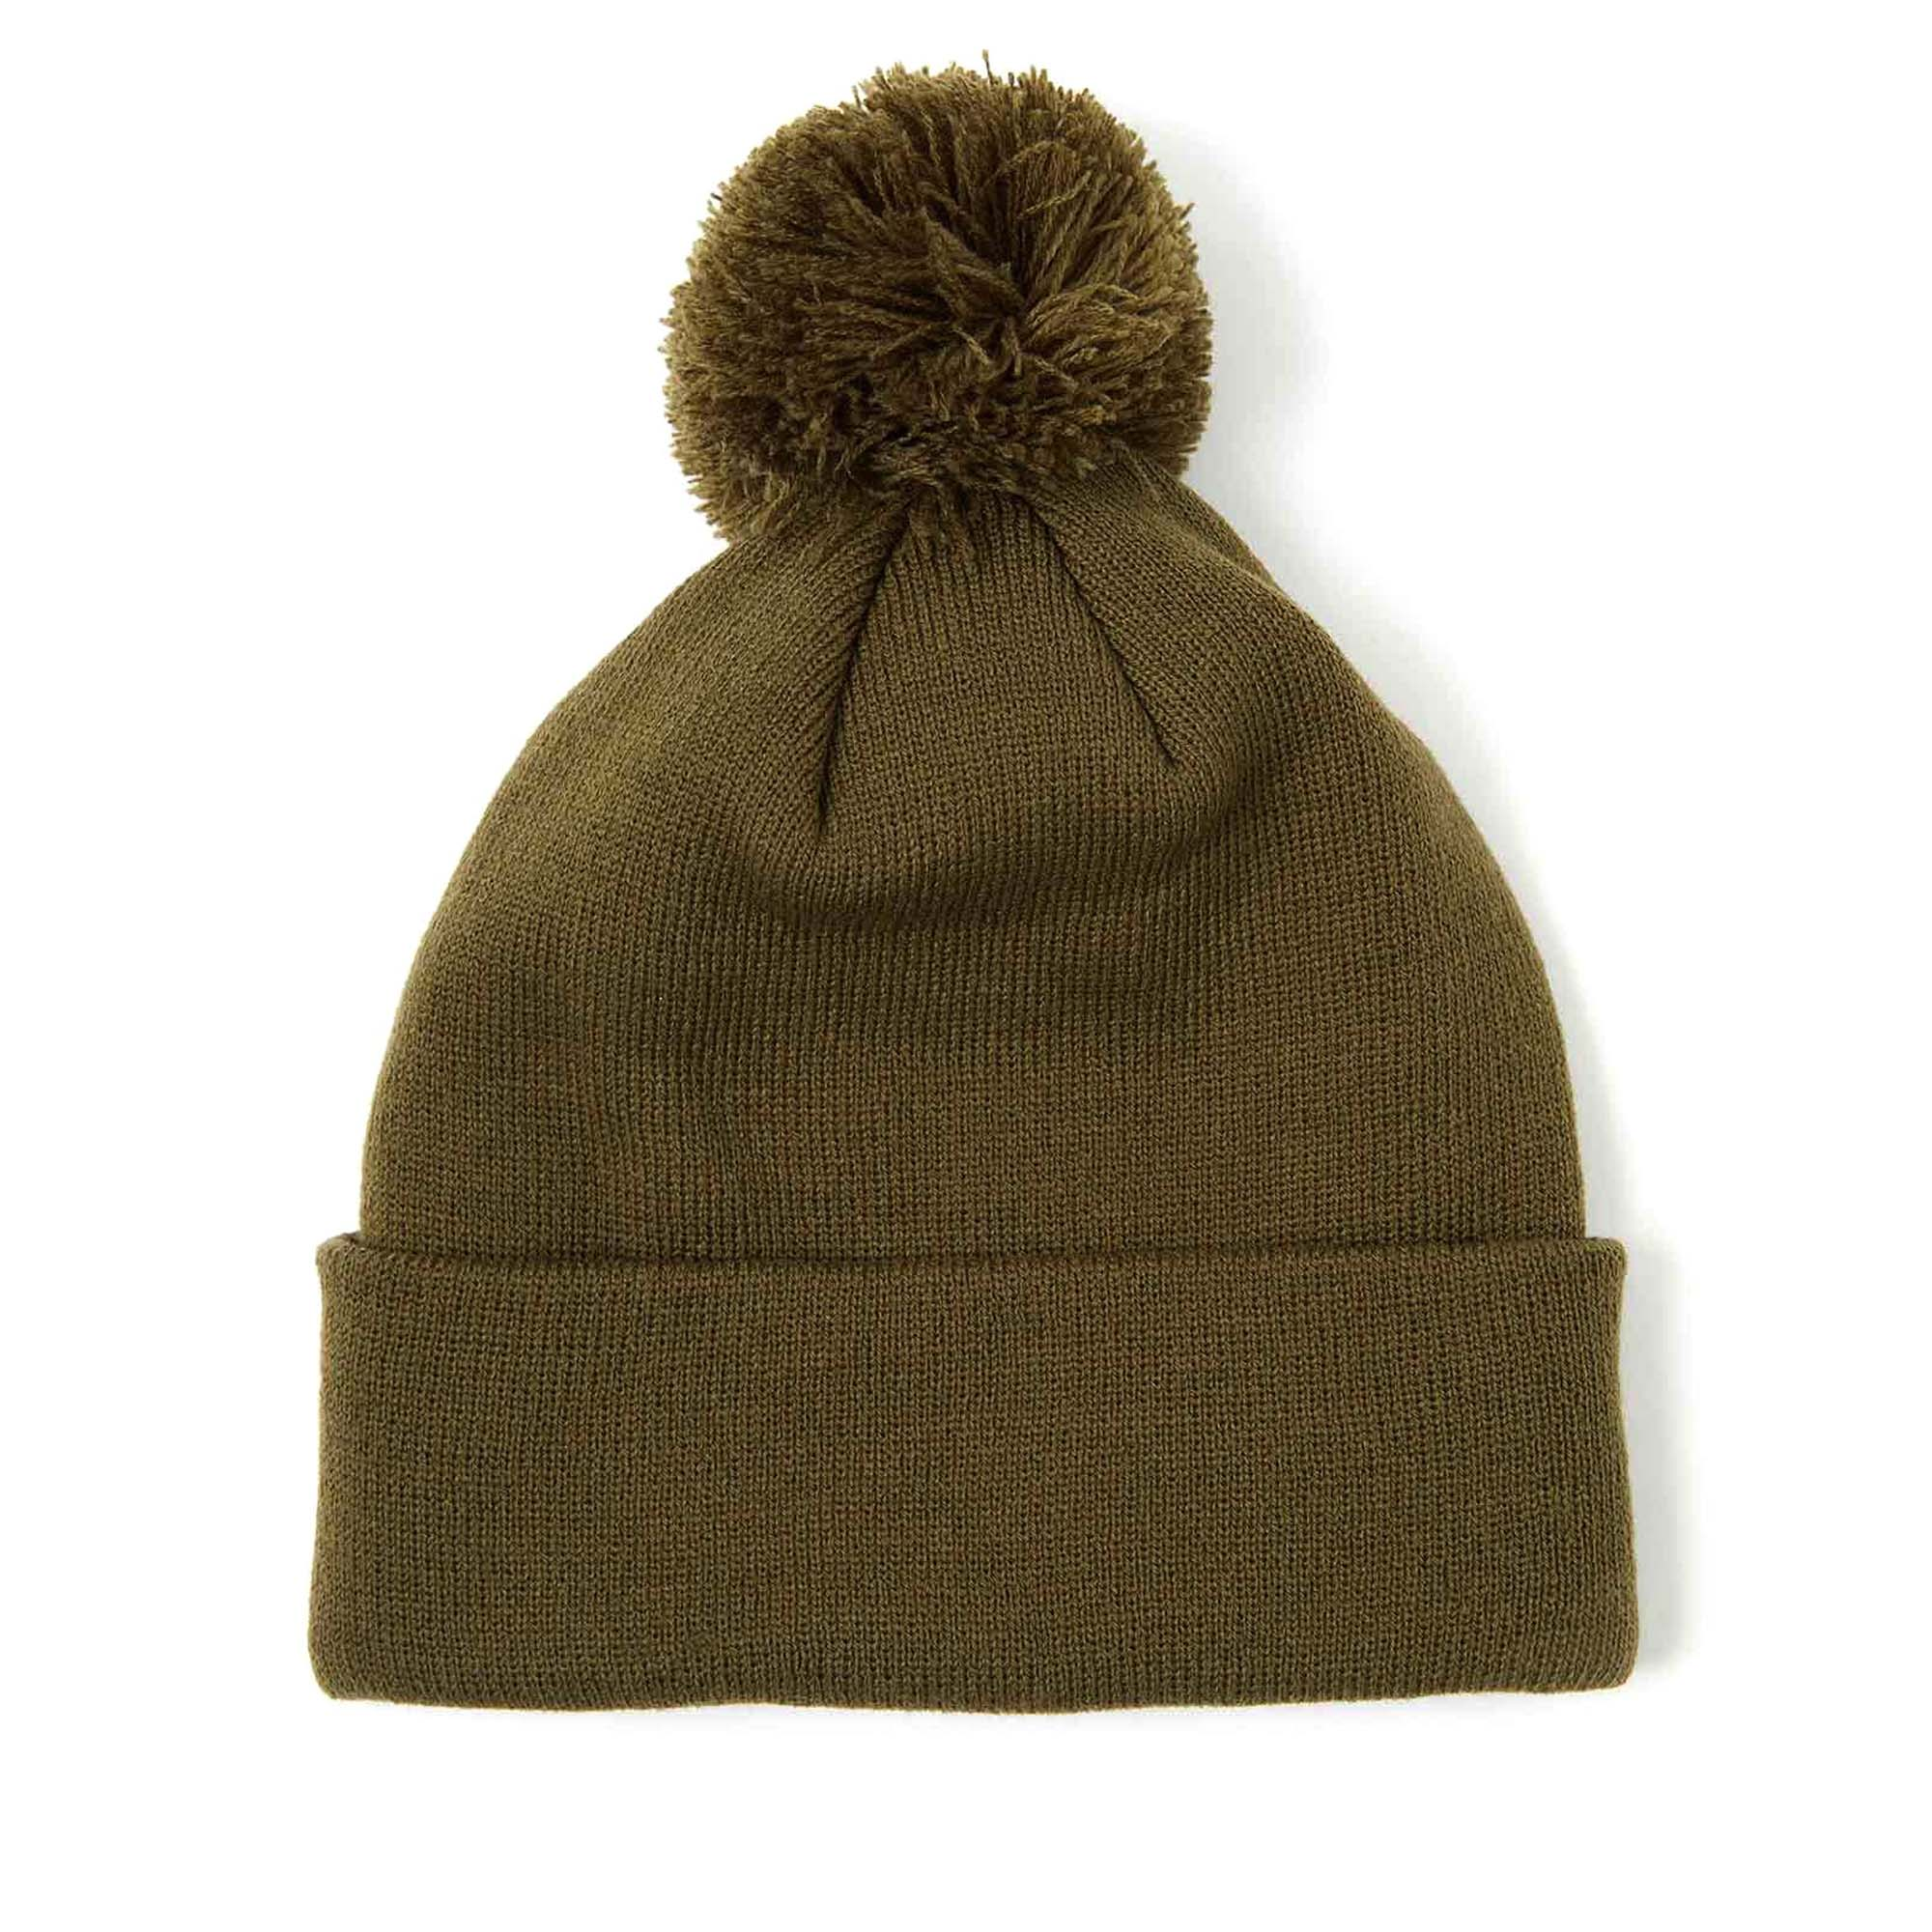 Gym Hat Beanie Hat Bobble Hat Christmas Hat Fashion Woolly Winter Hat